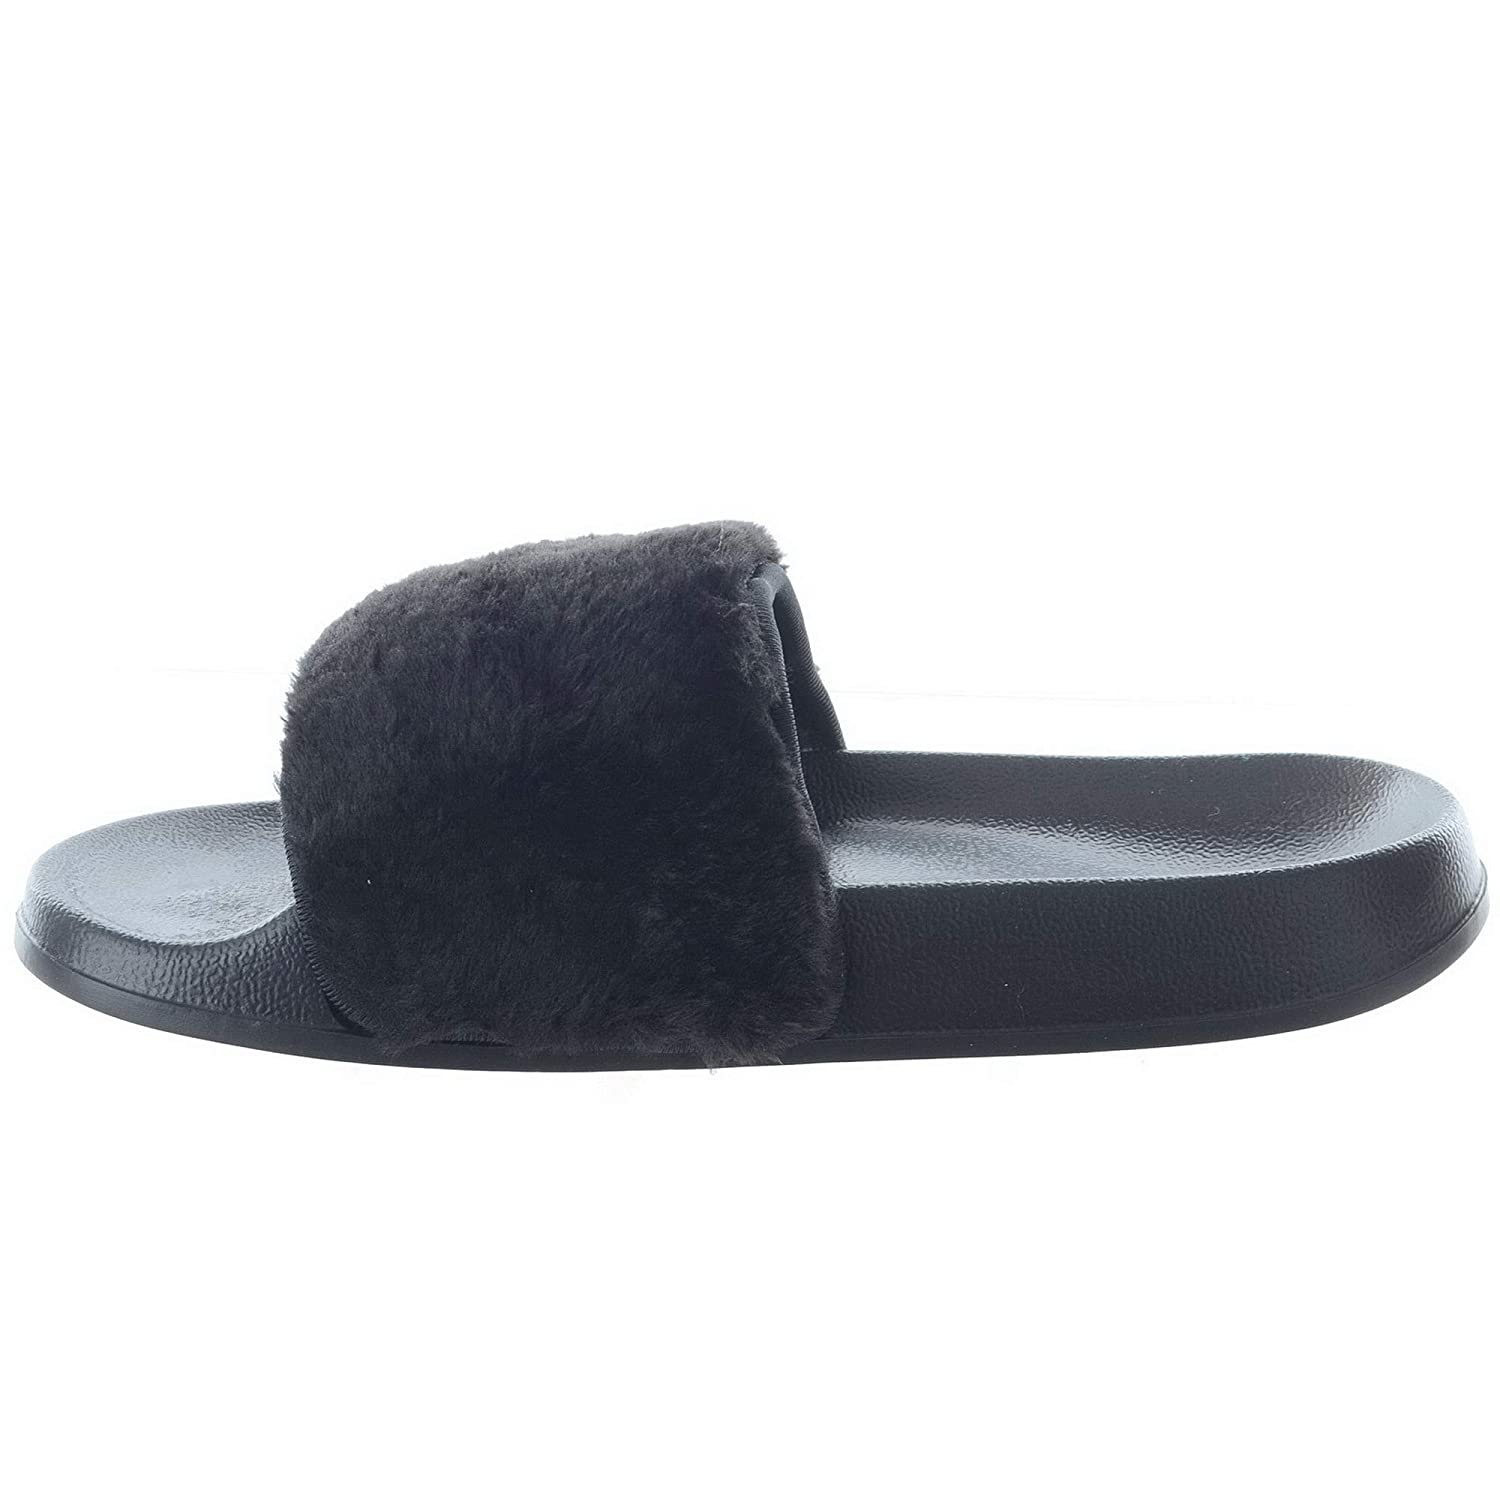 ad4e207a344f LADIES WOMENS COMFY RUBBER SLIDER FLAT SANDALS FAUX FUR TRIM SLIPPERS SHOES  SIZE 3-8  Amazon.co.uk  Shoes   Bags